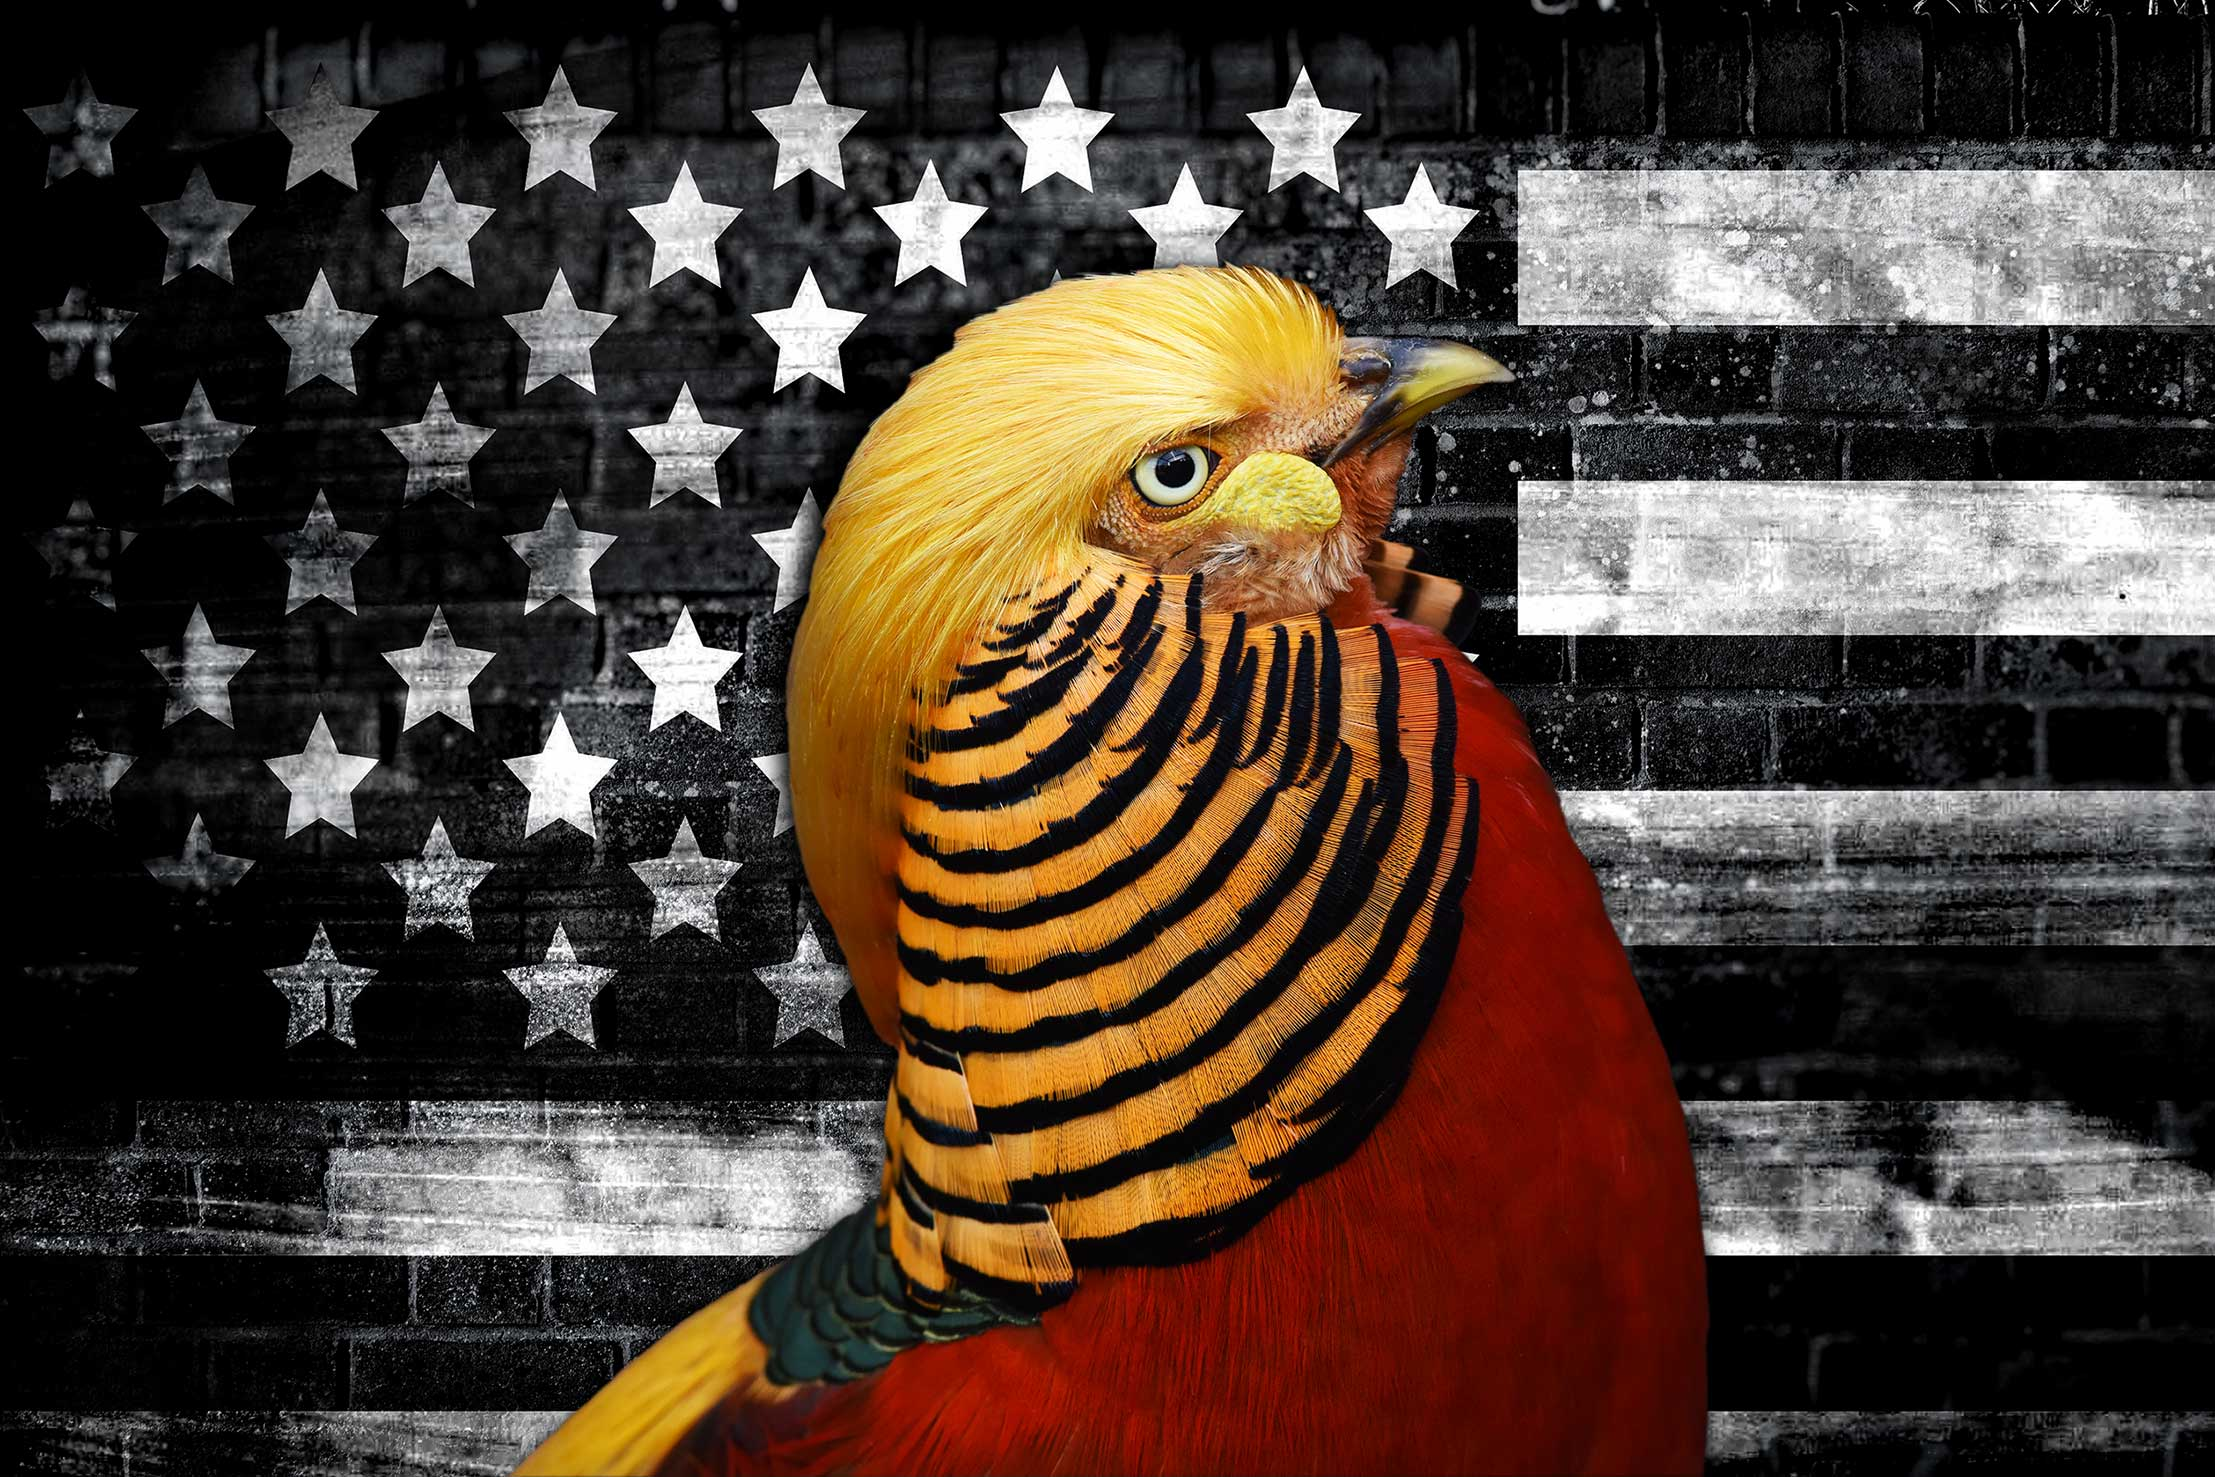 Donald Trump President of The United States as a Rooster